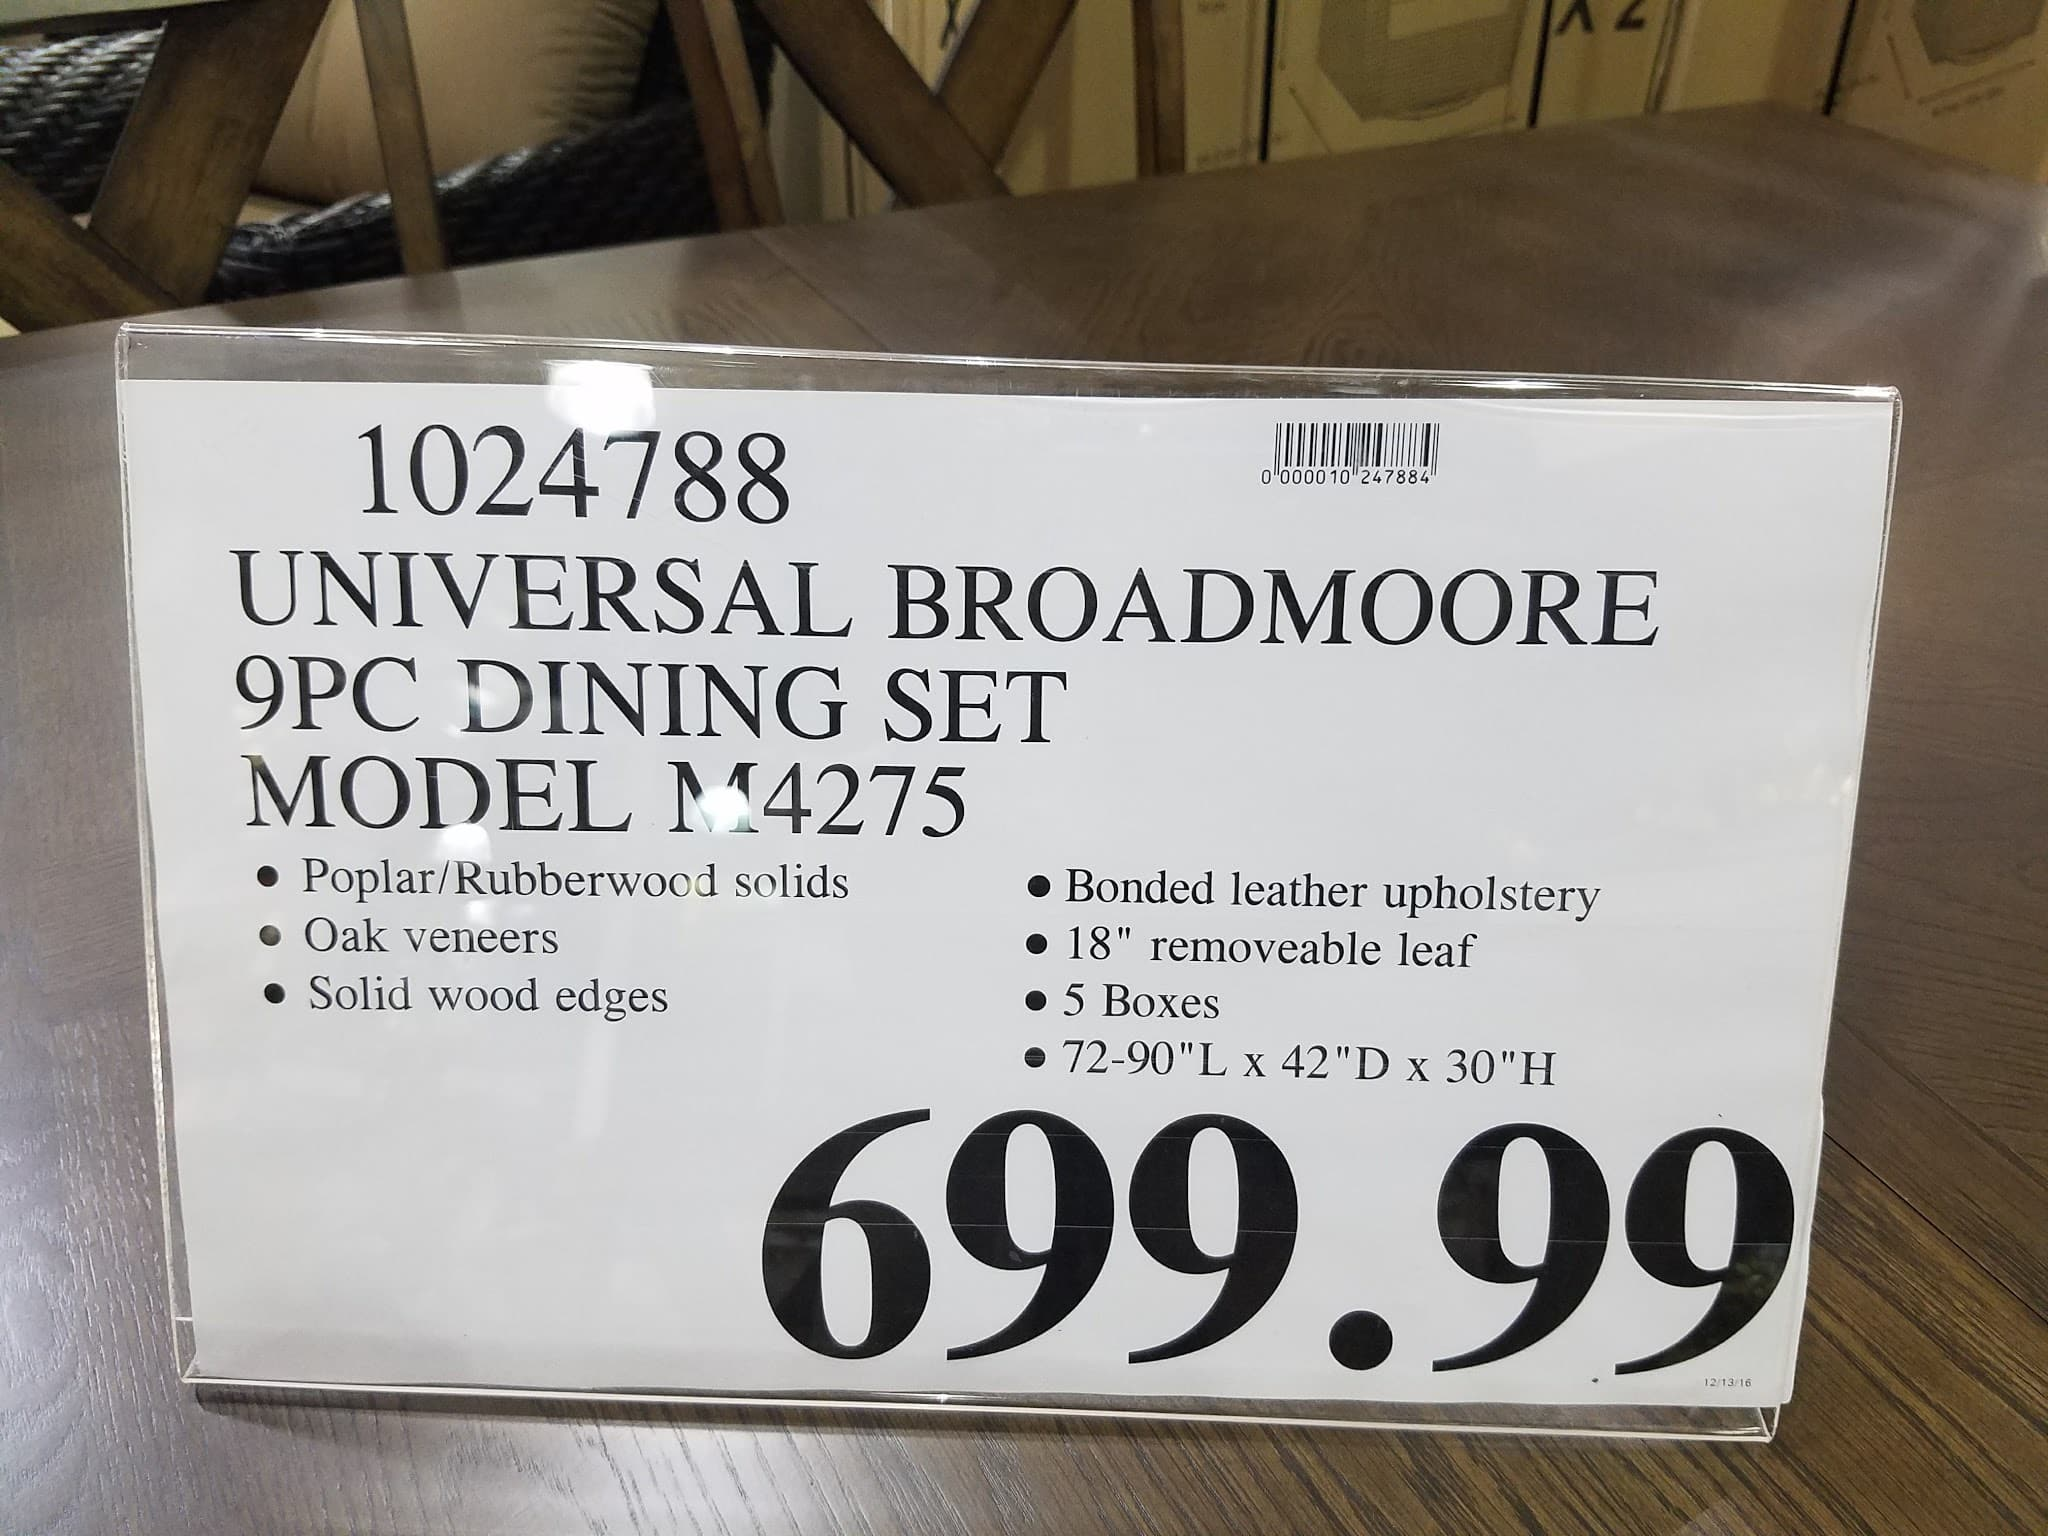 Universal Broadmoore 9pc Dining Set At Local Costco Warehouse YMMV 699.99$    Slickdeals.net